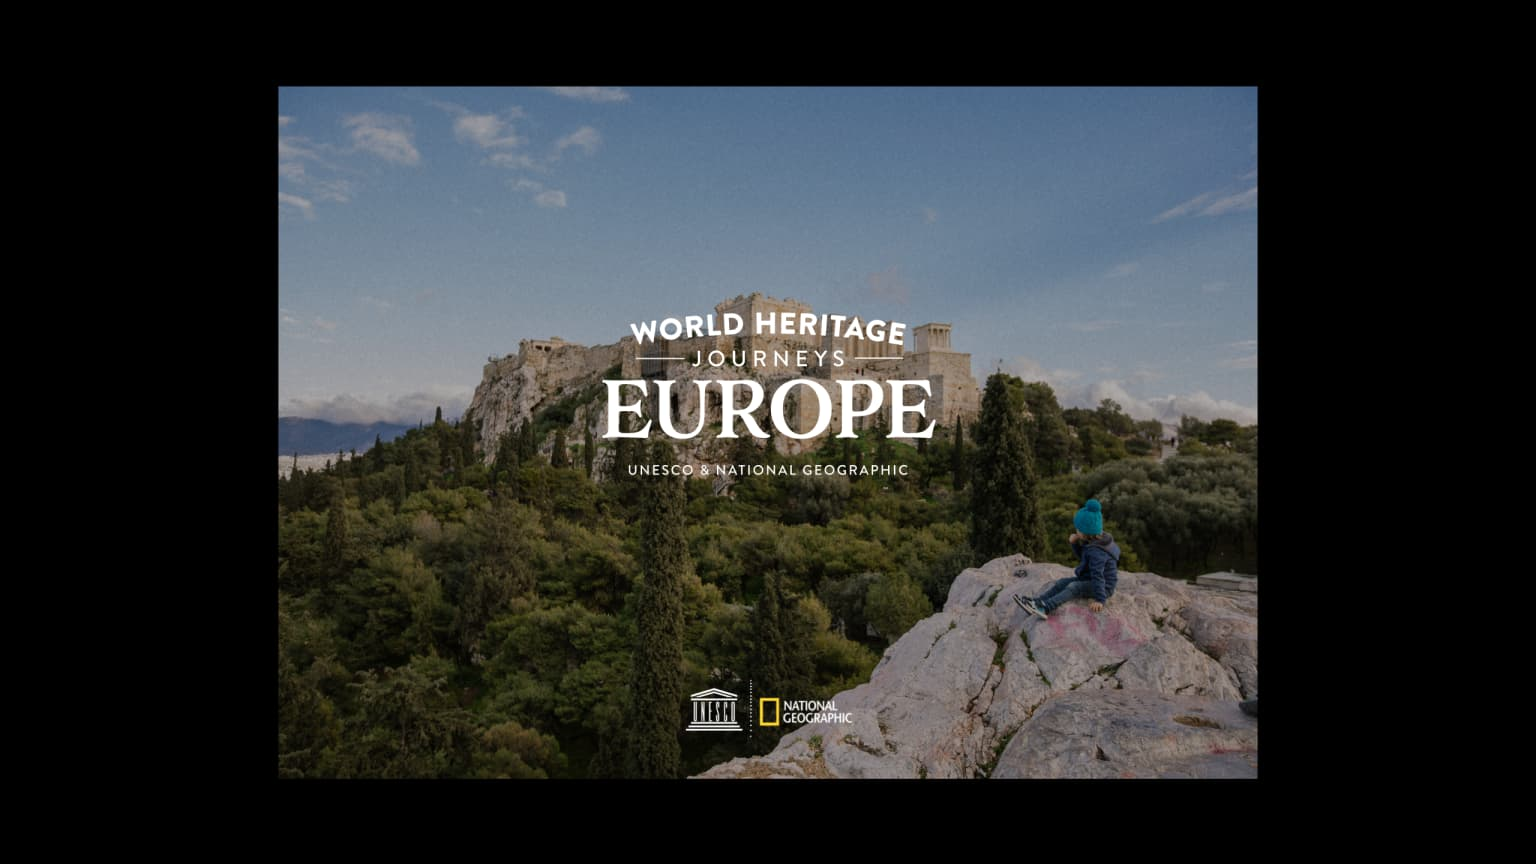 National Geographic & UNESCO: World Heritage Journeys of Europe